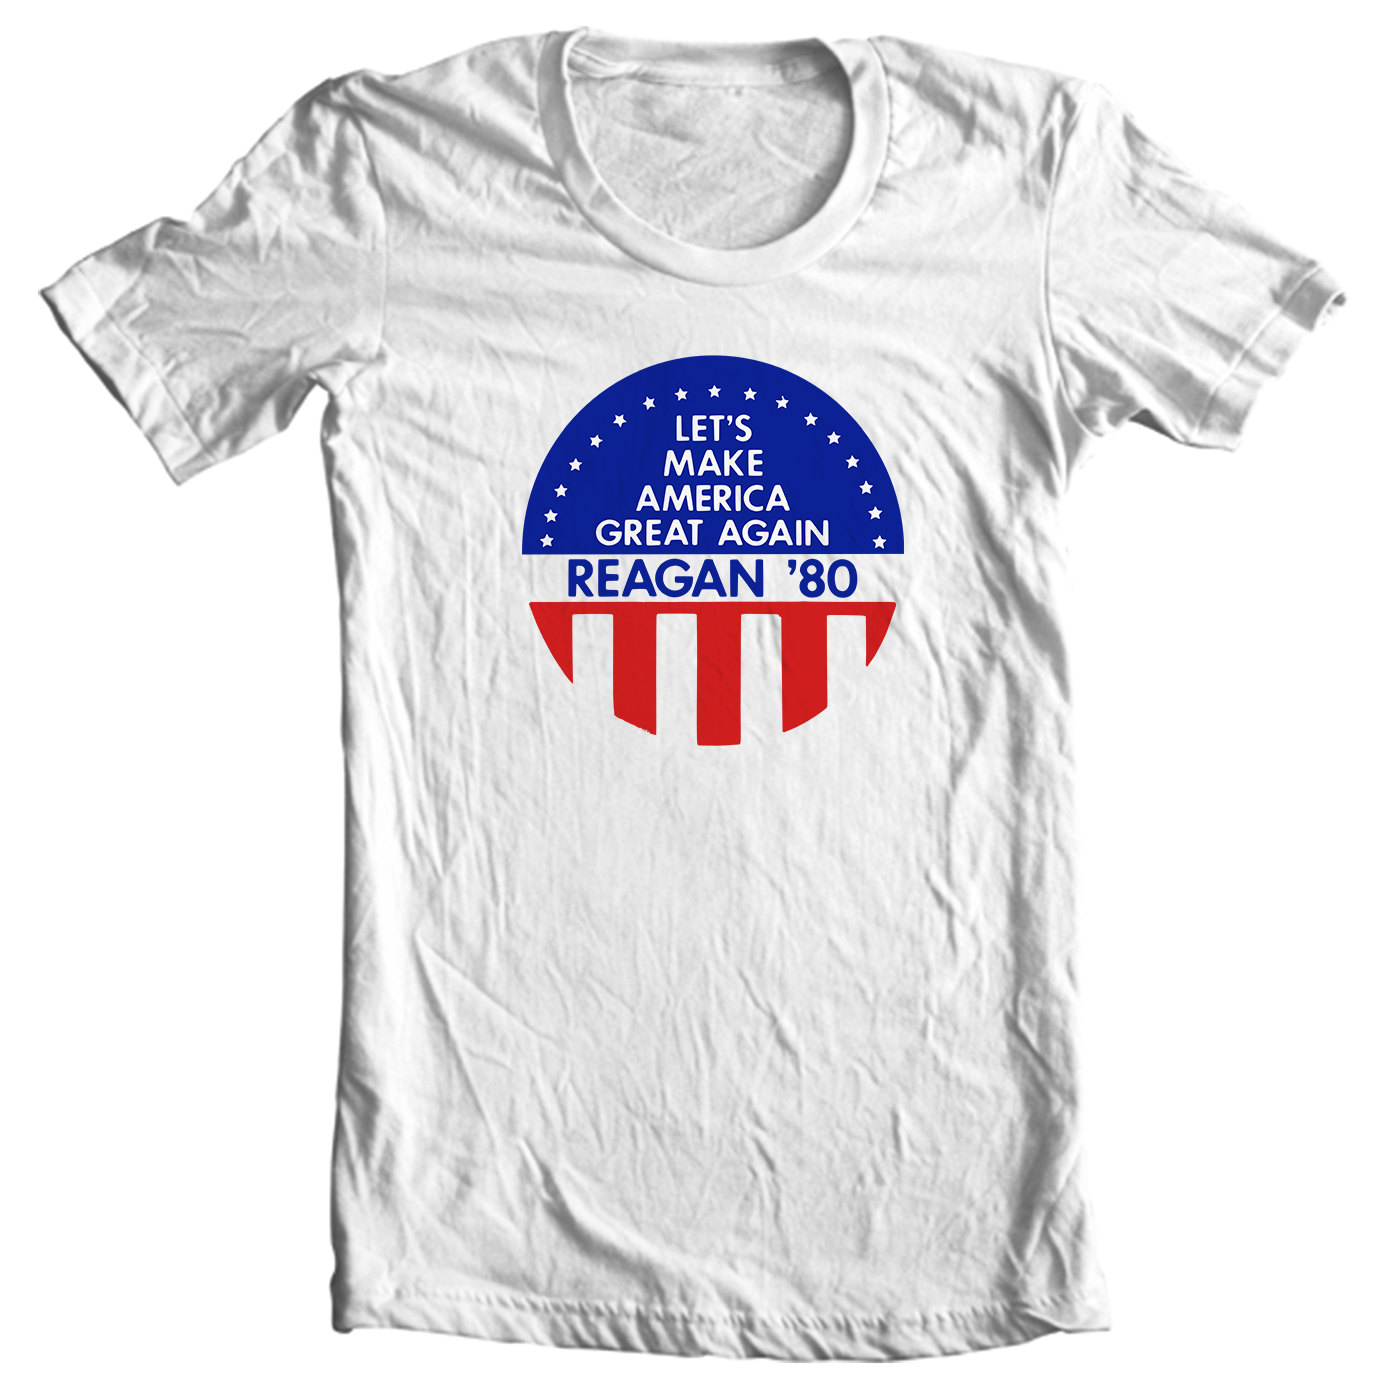 Let's Make America Great Again - Ronald Reagan 1980 Political Campaign Button T-shirt